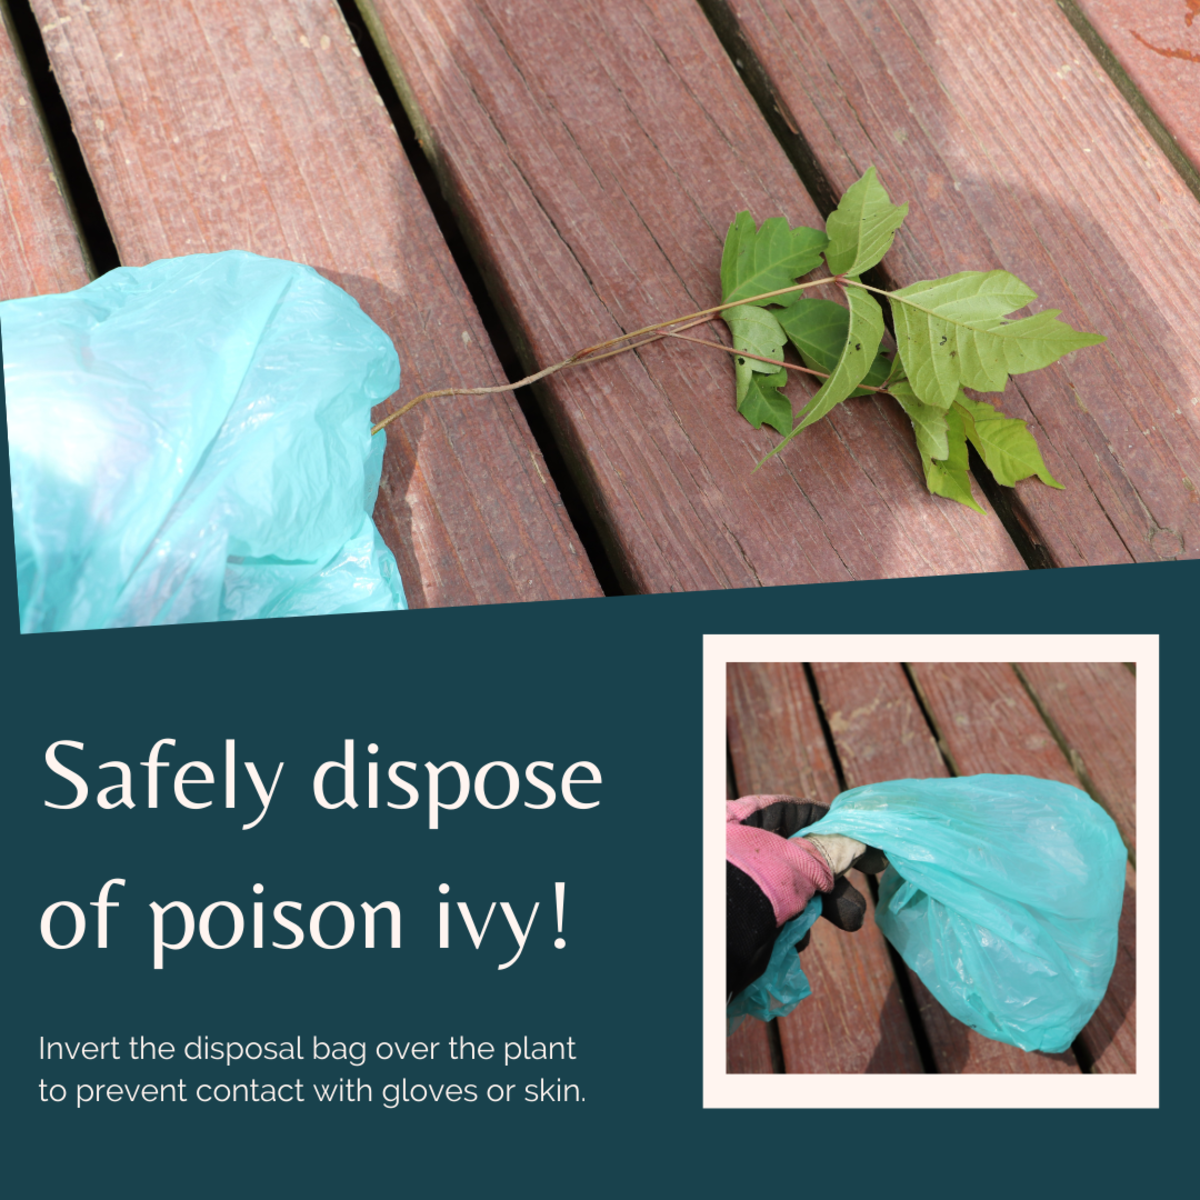 Grasp the plant with a plastic garbage bag and turn the bag inside-out to prevent any contact of the vine with exposed skin or gloves.